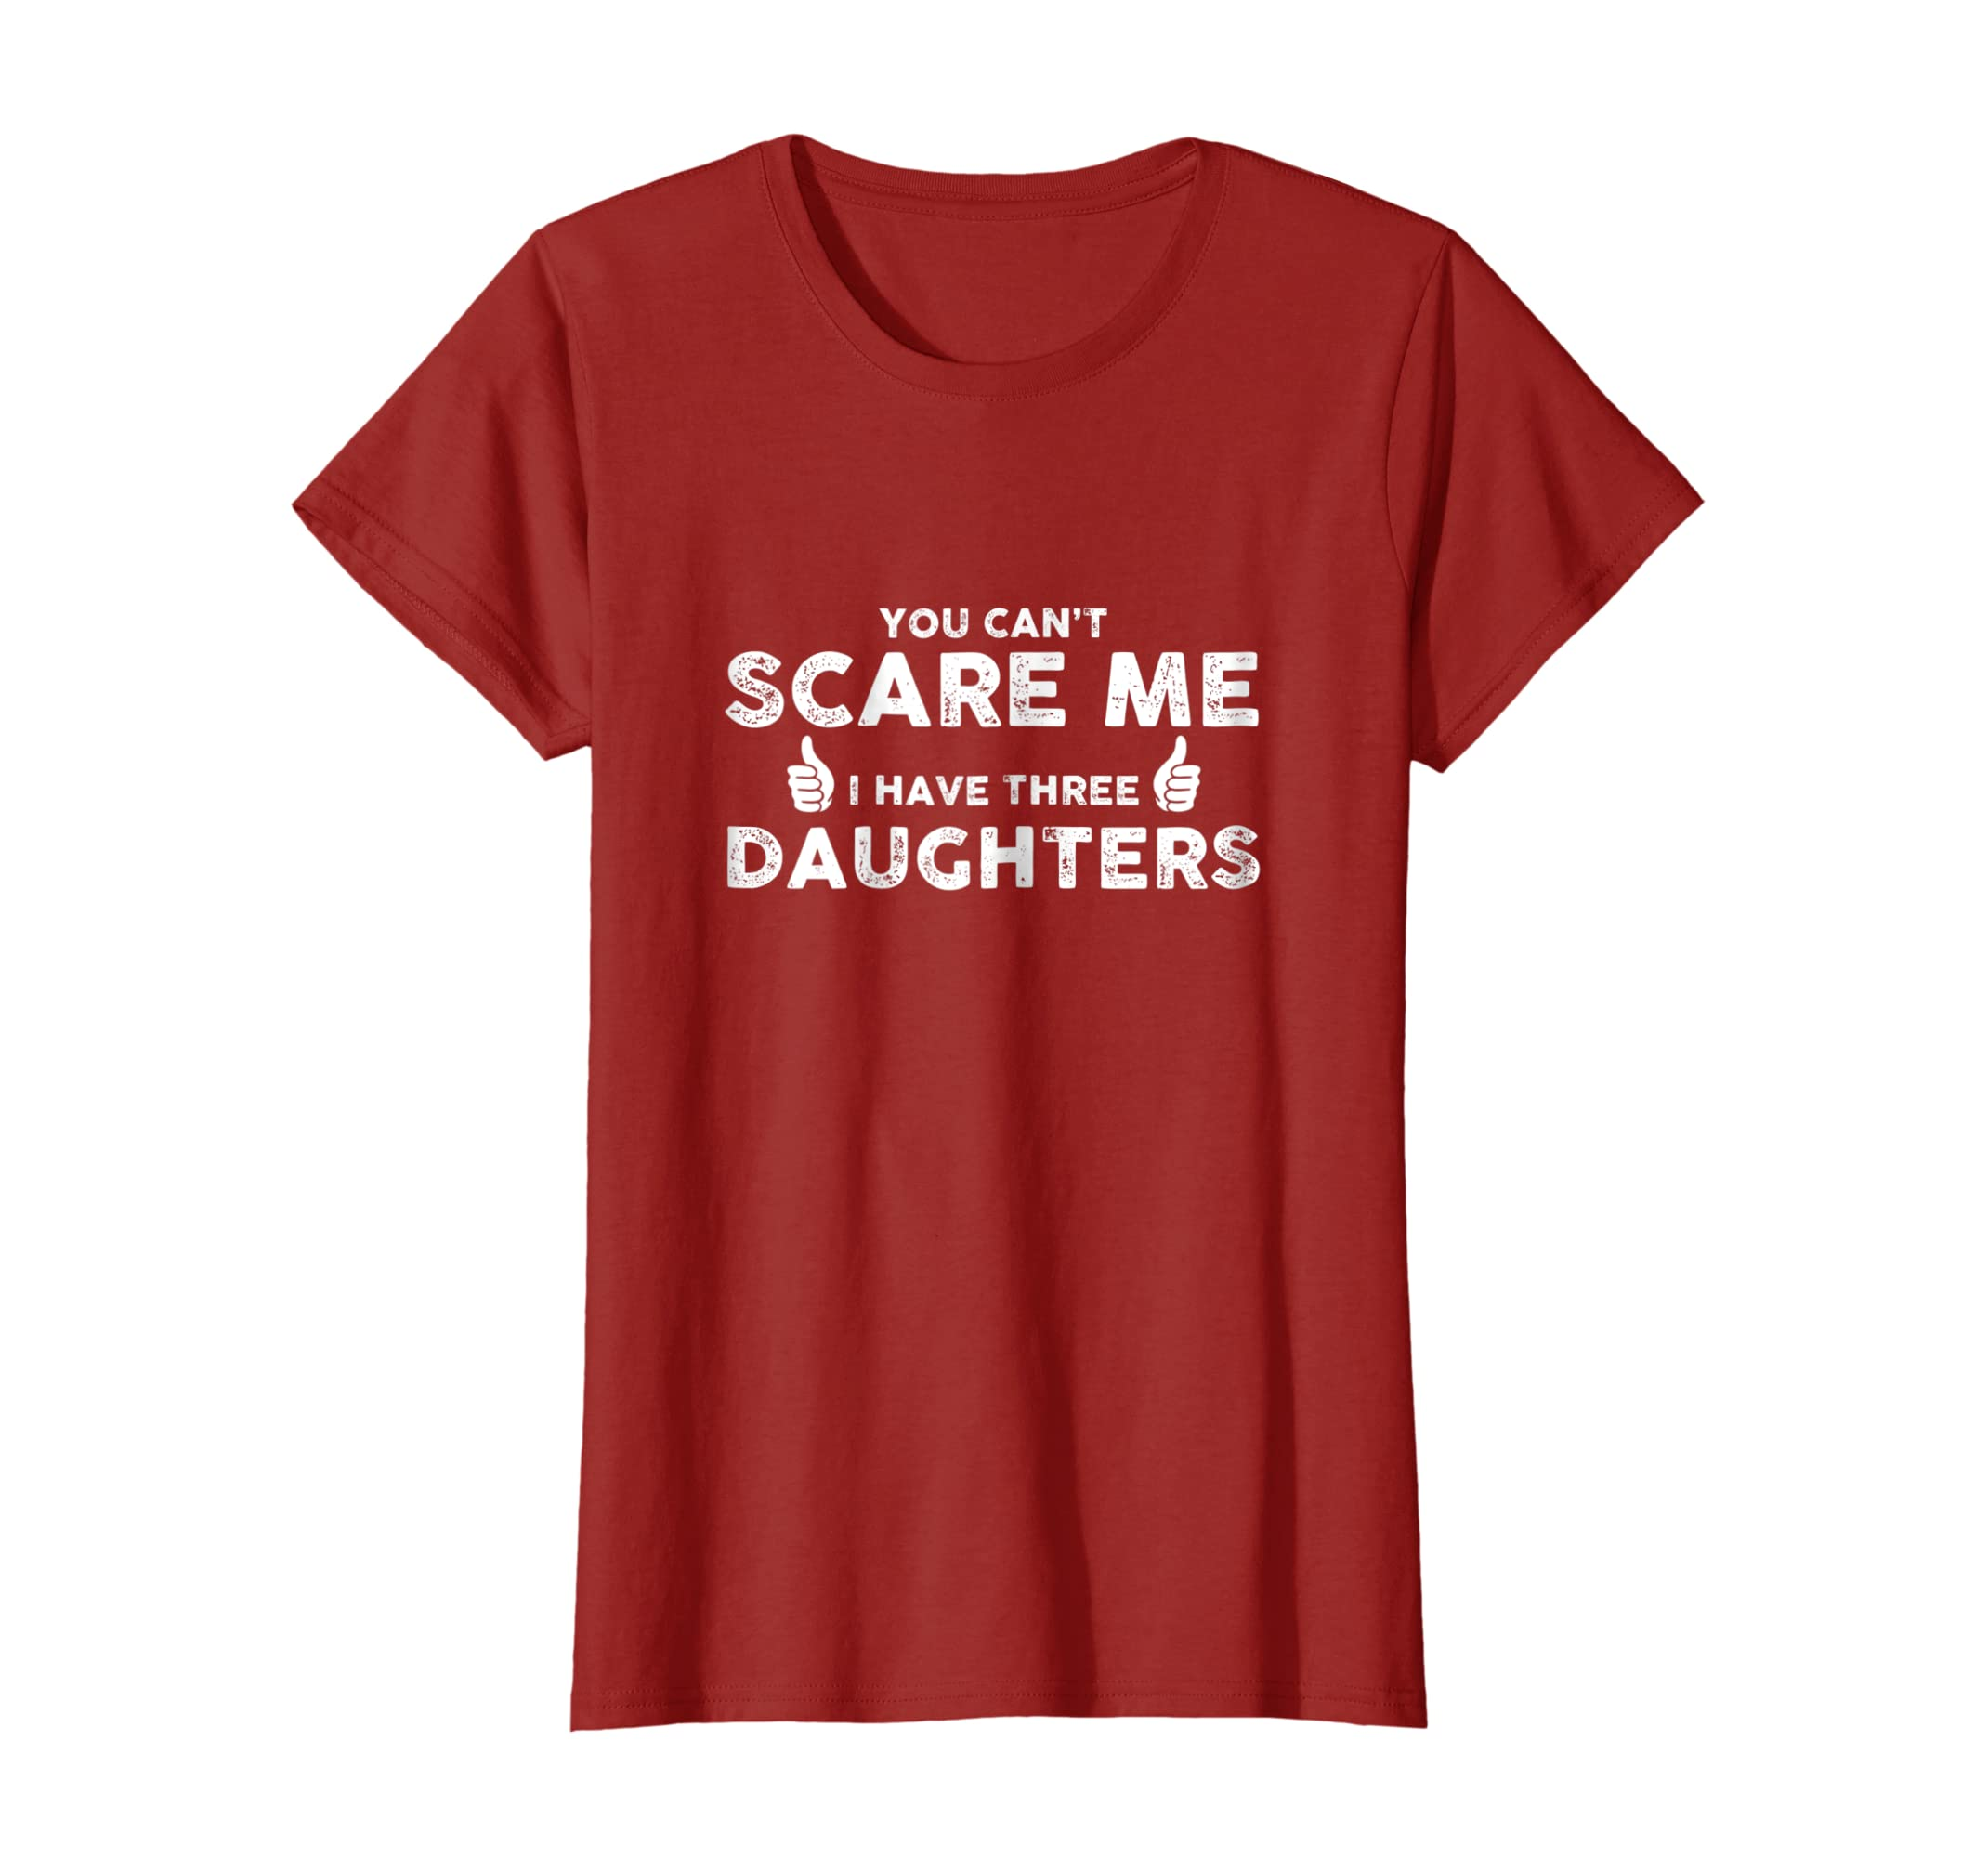 063c7d25eb2b7 Amazon.com: You Can't Scare Me I Have Three Daughters Father's Day ...